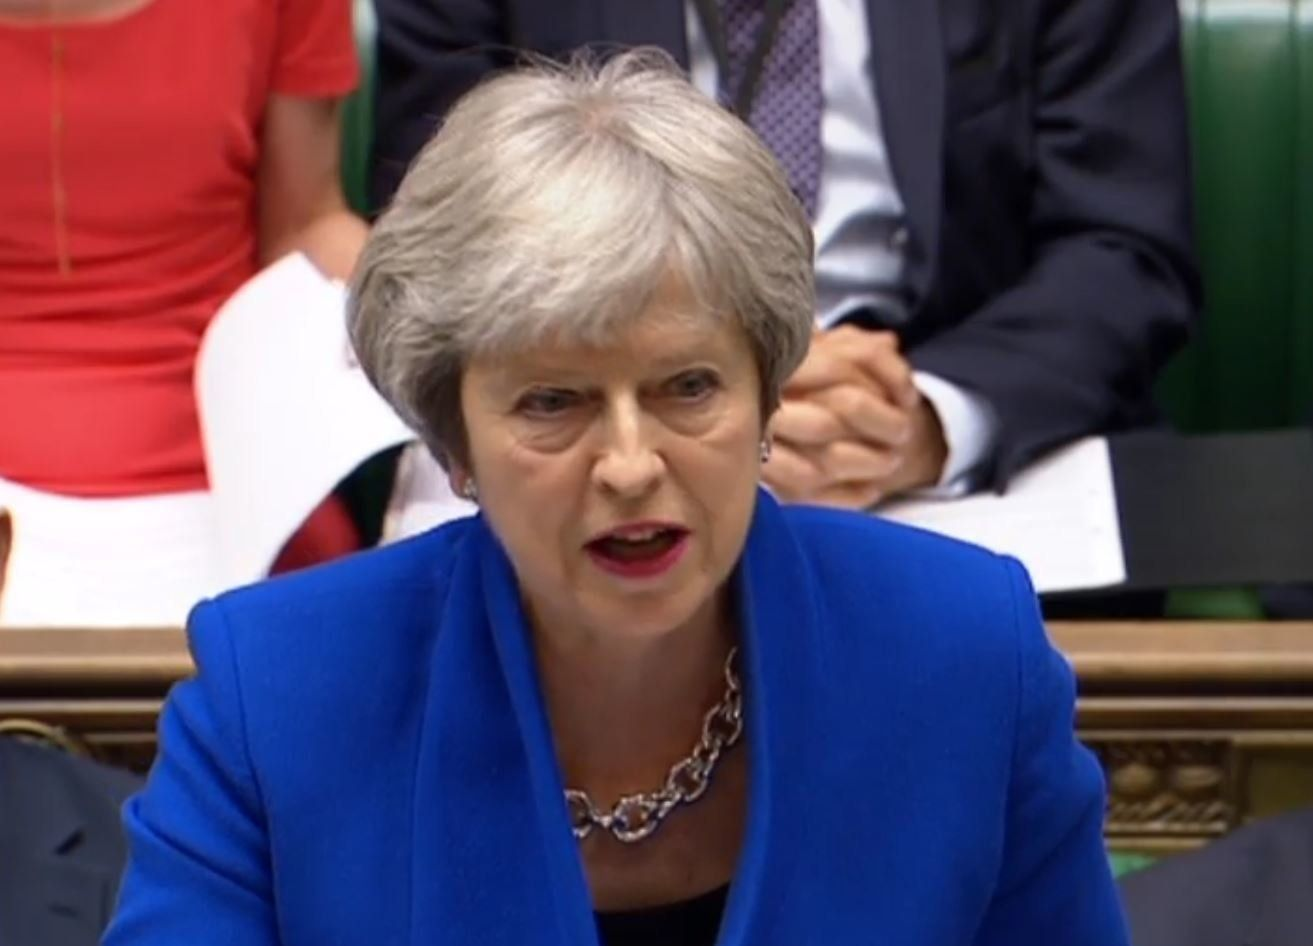 Prime Minister Theresa May speaks during Prime Minister's Questions in the House of